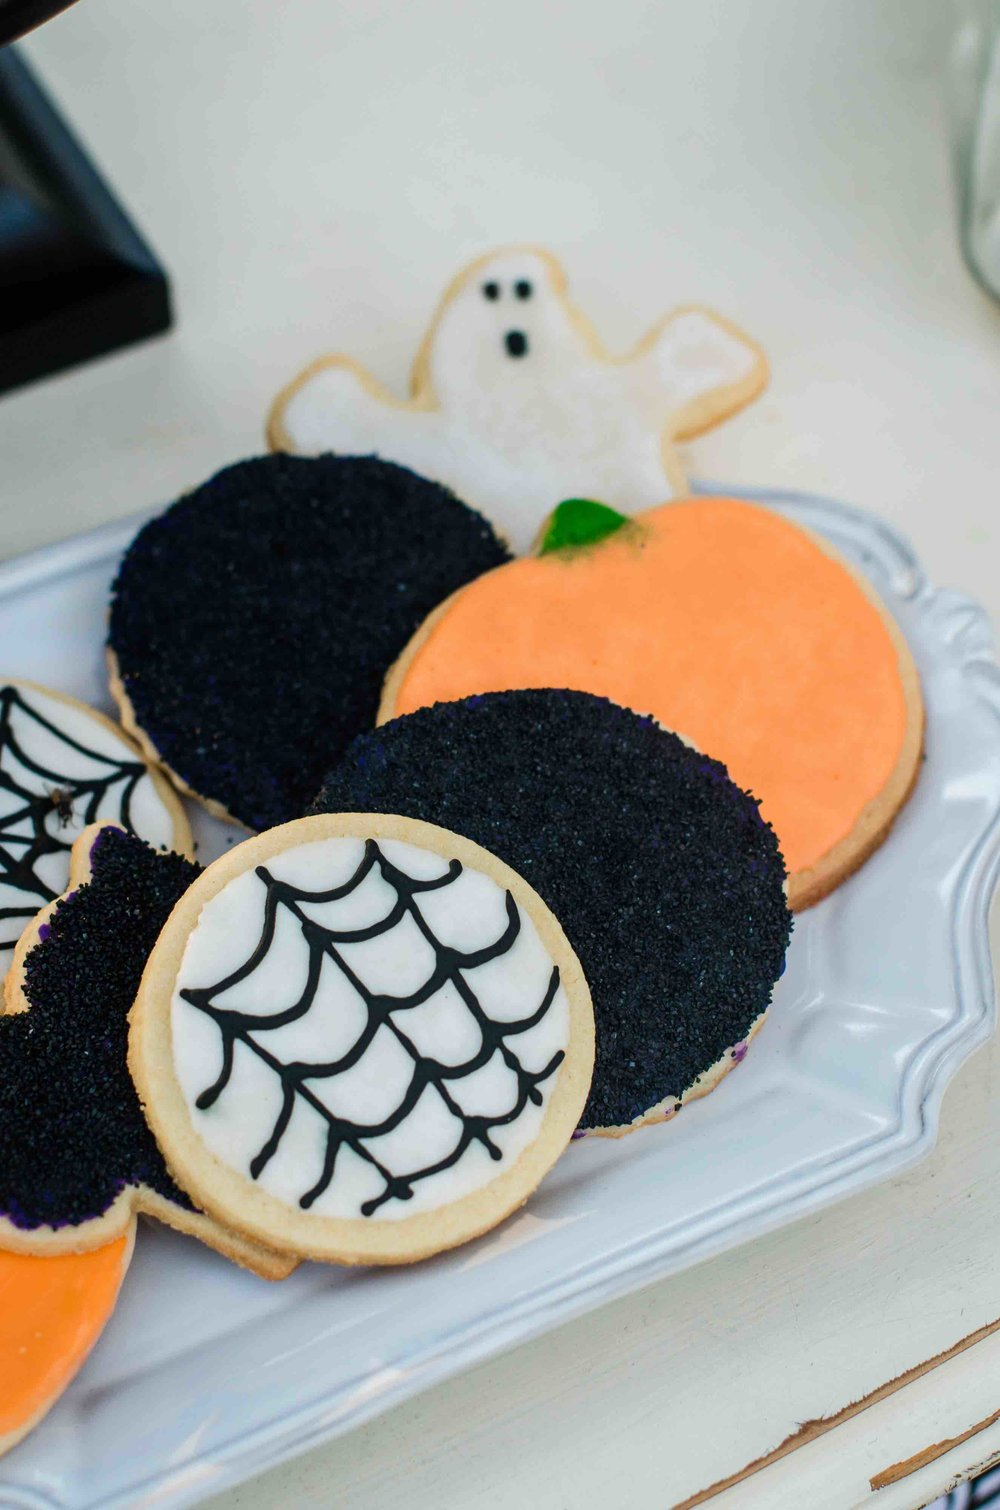 Halloween party ideas / Kids Halloween party ideas / Halloween dessert table ideas / Little Witches party ideas / Halloween party decor / Cute Halloween party ideas and decor / Halloween dessert ideas / Halloween cookies ideas / Styled by Carolina from MINT Event Design / www.minteventdesign.com